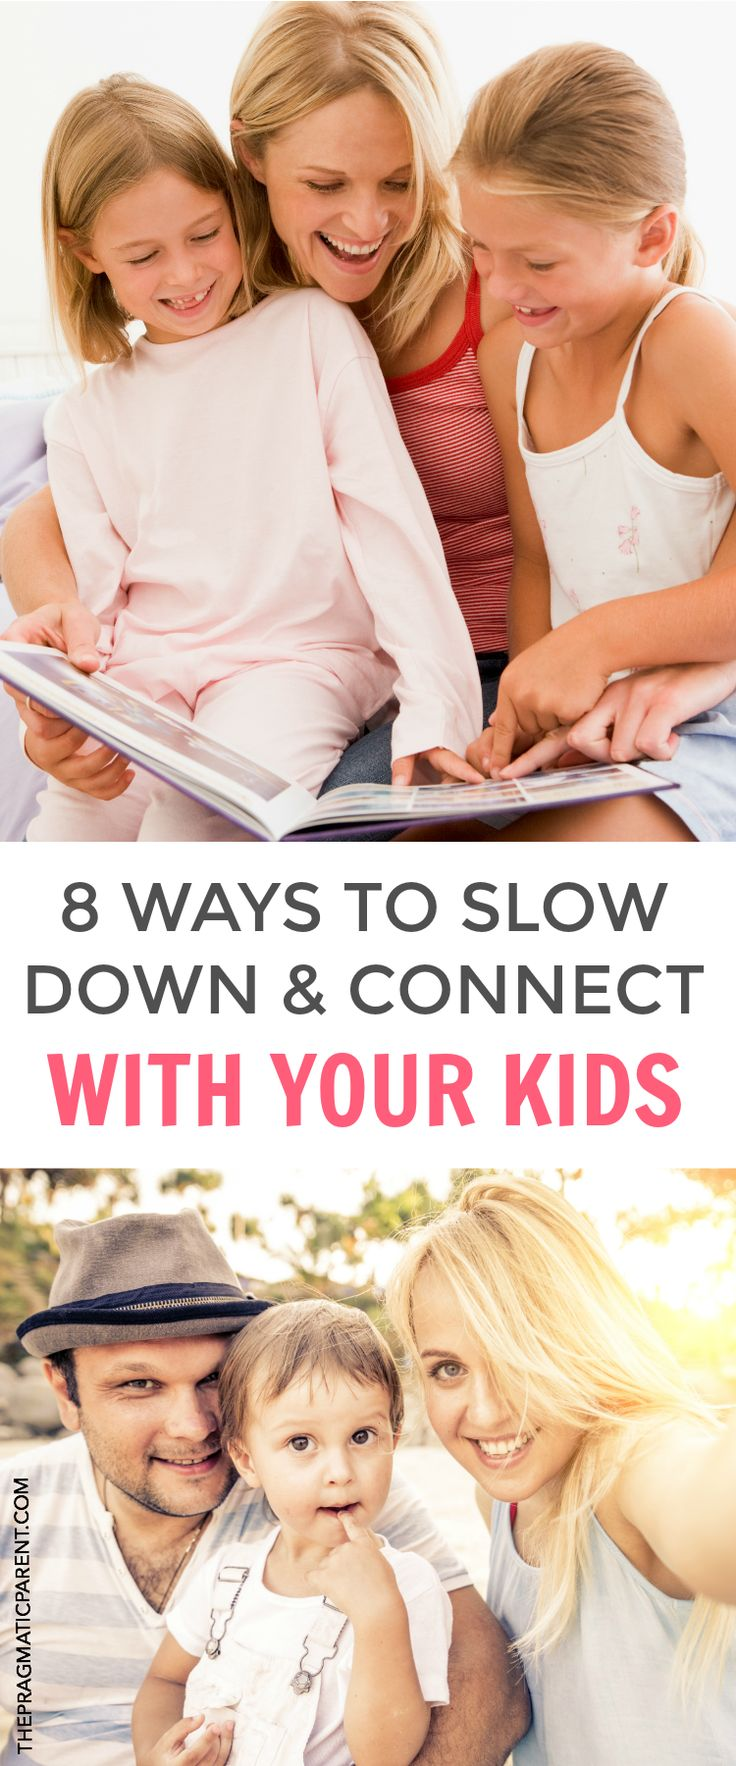 Life moves fast - taking time to connect with your kid each day is super important! Simple Ways to Connect and Make Your Kids Feel Loved Every Day. 8 windows of time during the day that are perfect for a couple minutes of meaningful emotional connection to strengthen your bond with your kids, stay up to date on their lives and make them feel loved.